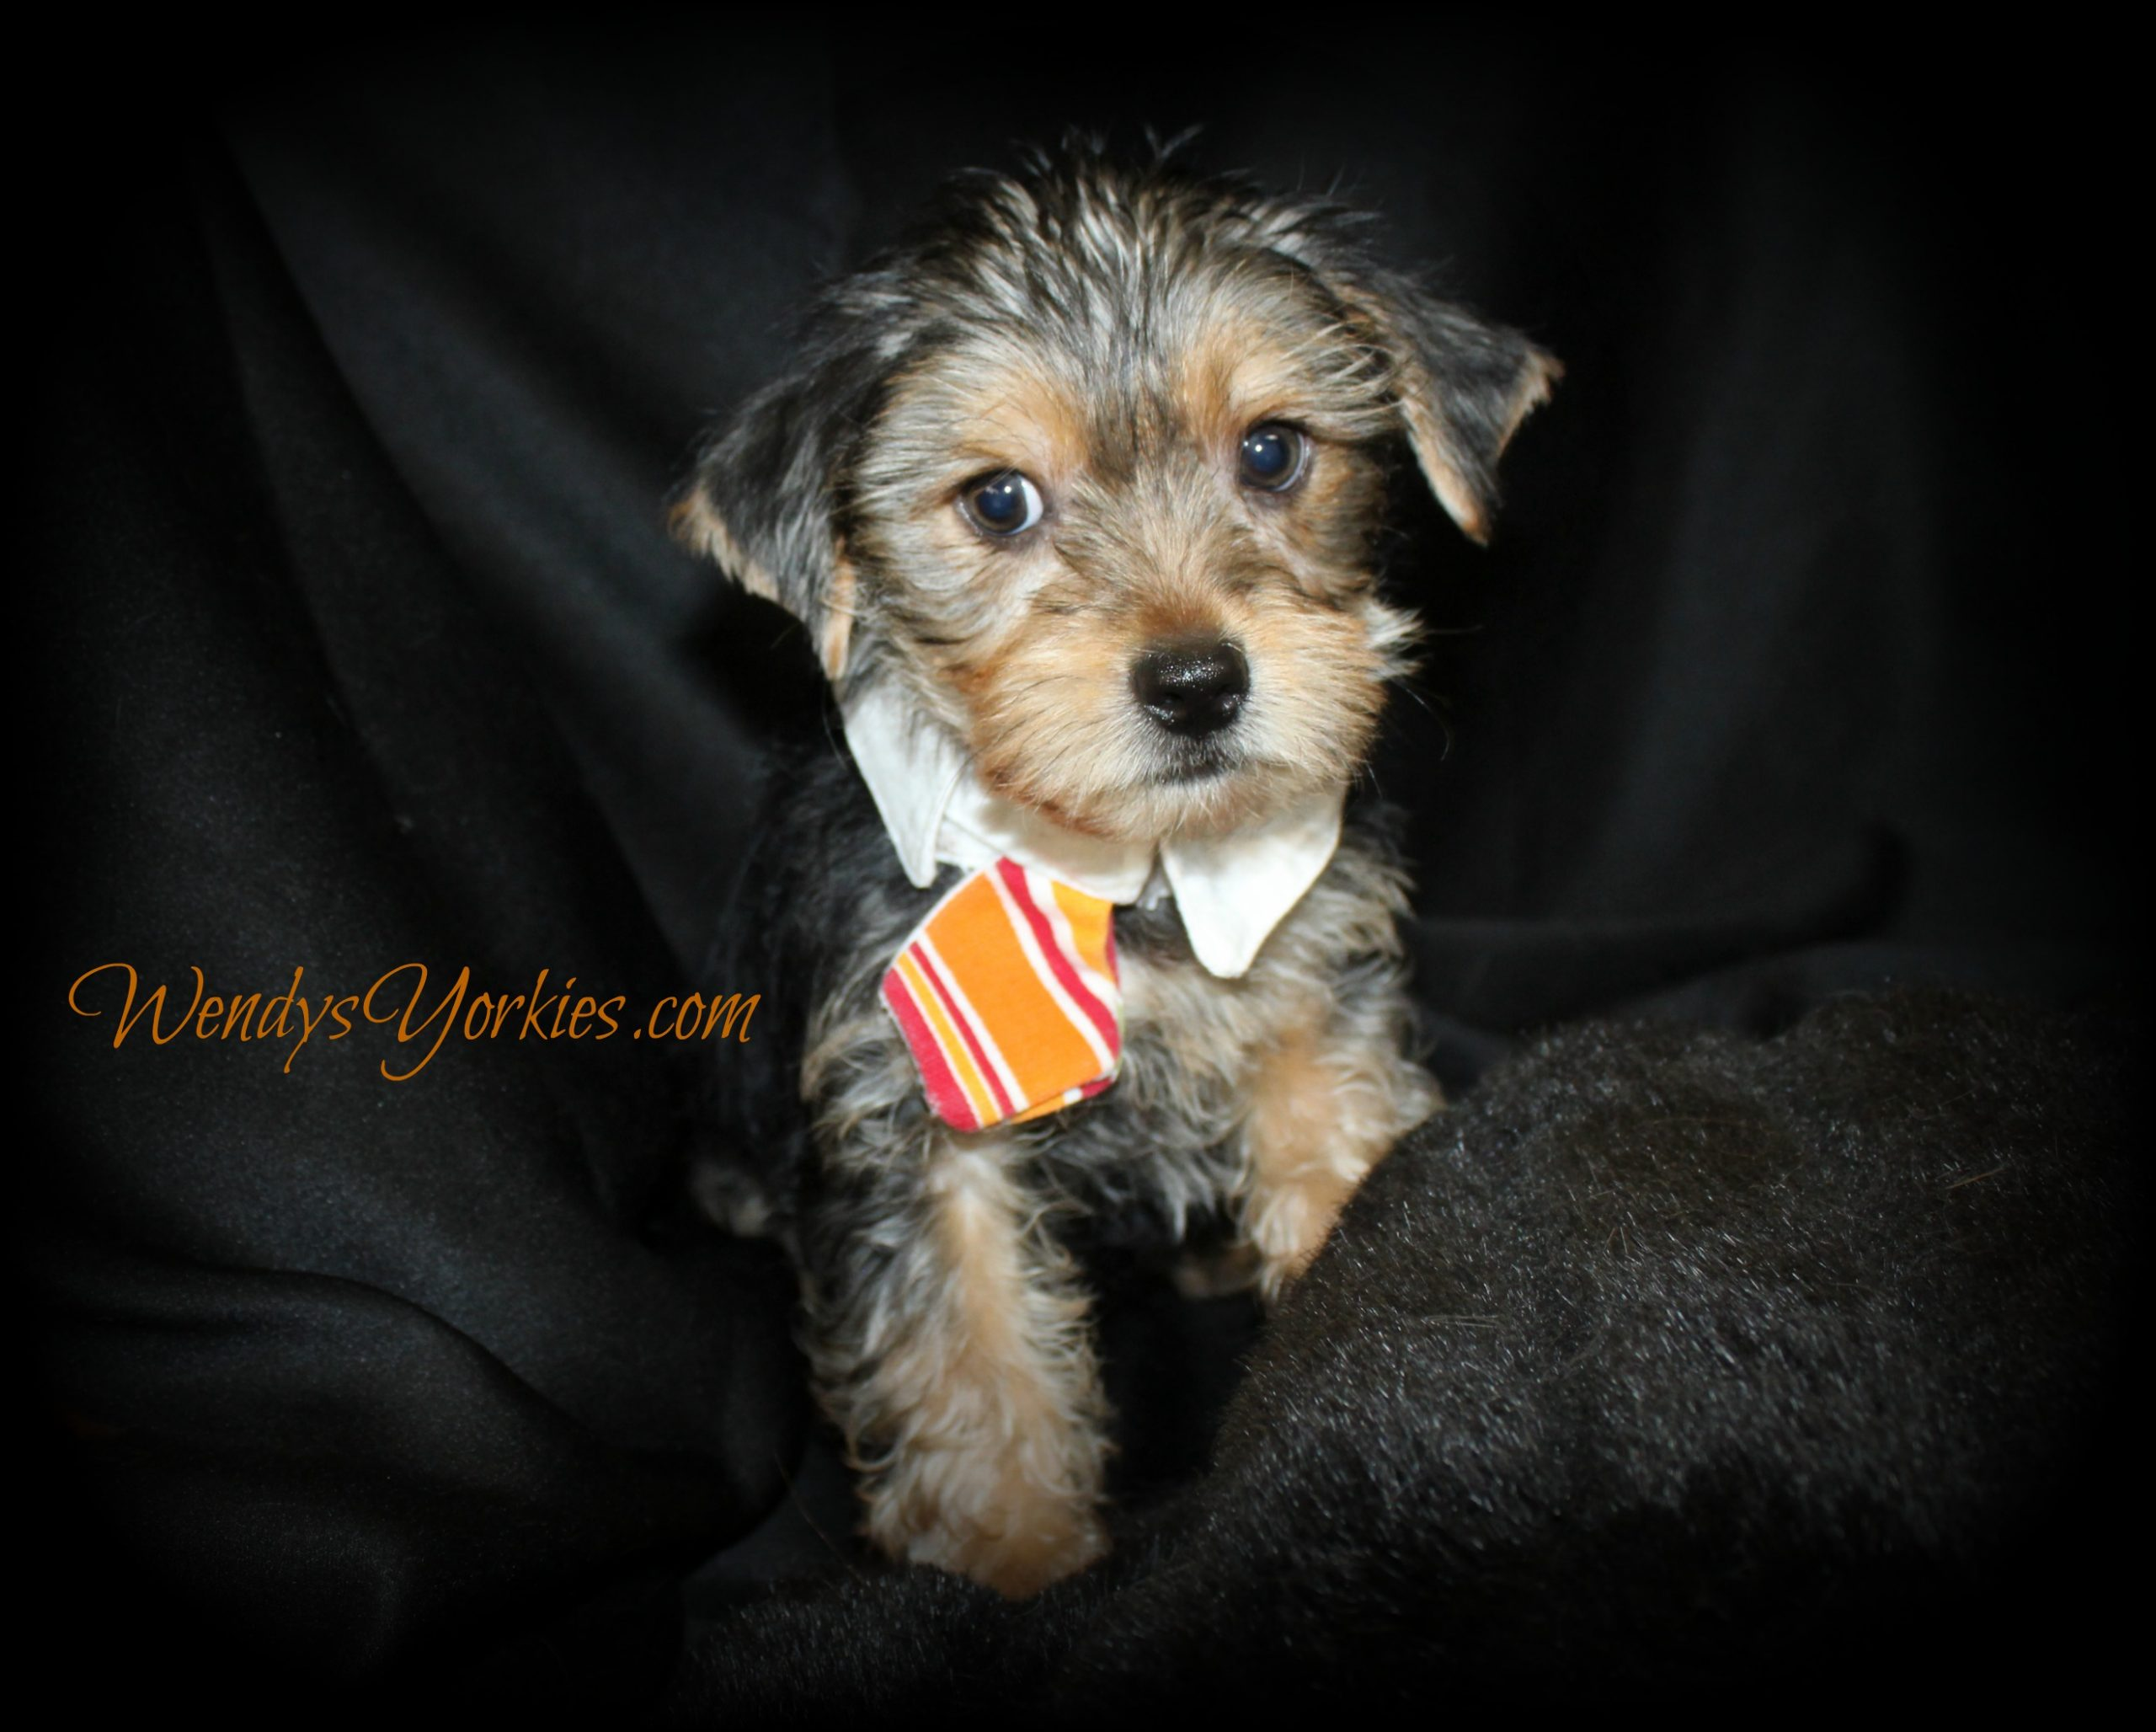 Male YOrkie puppy for sale, WendysYorkies.comor